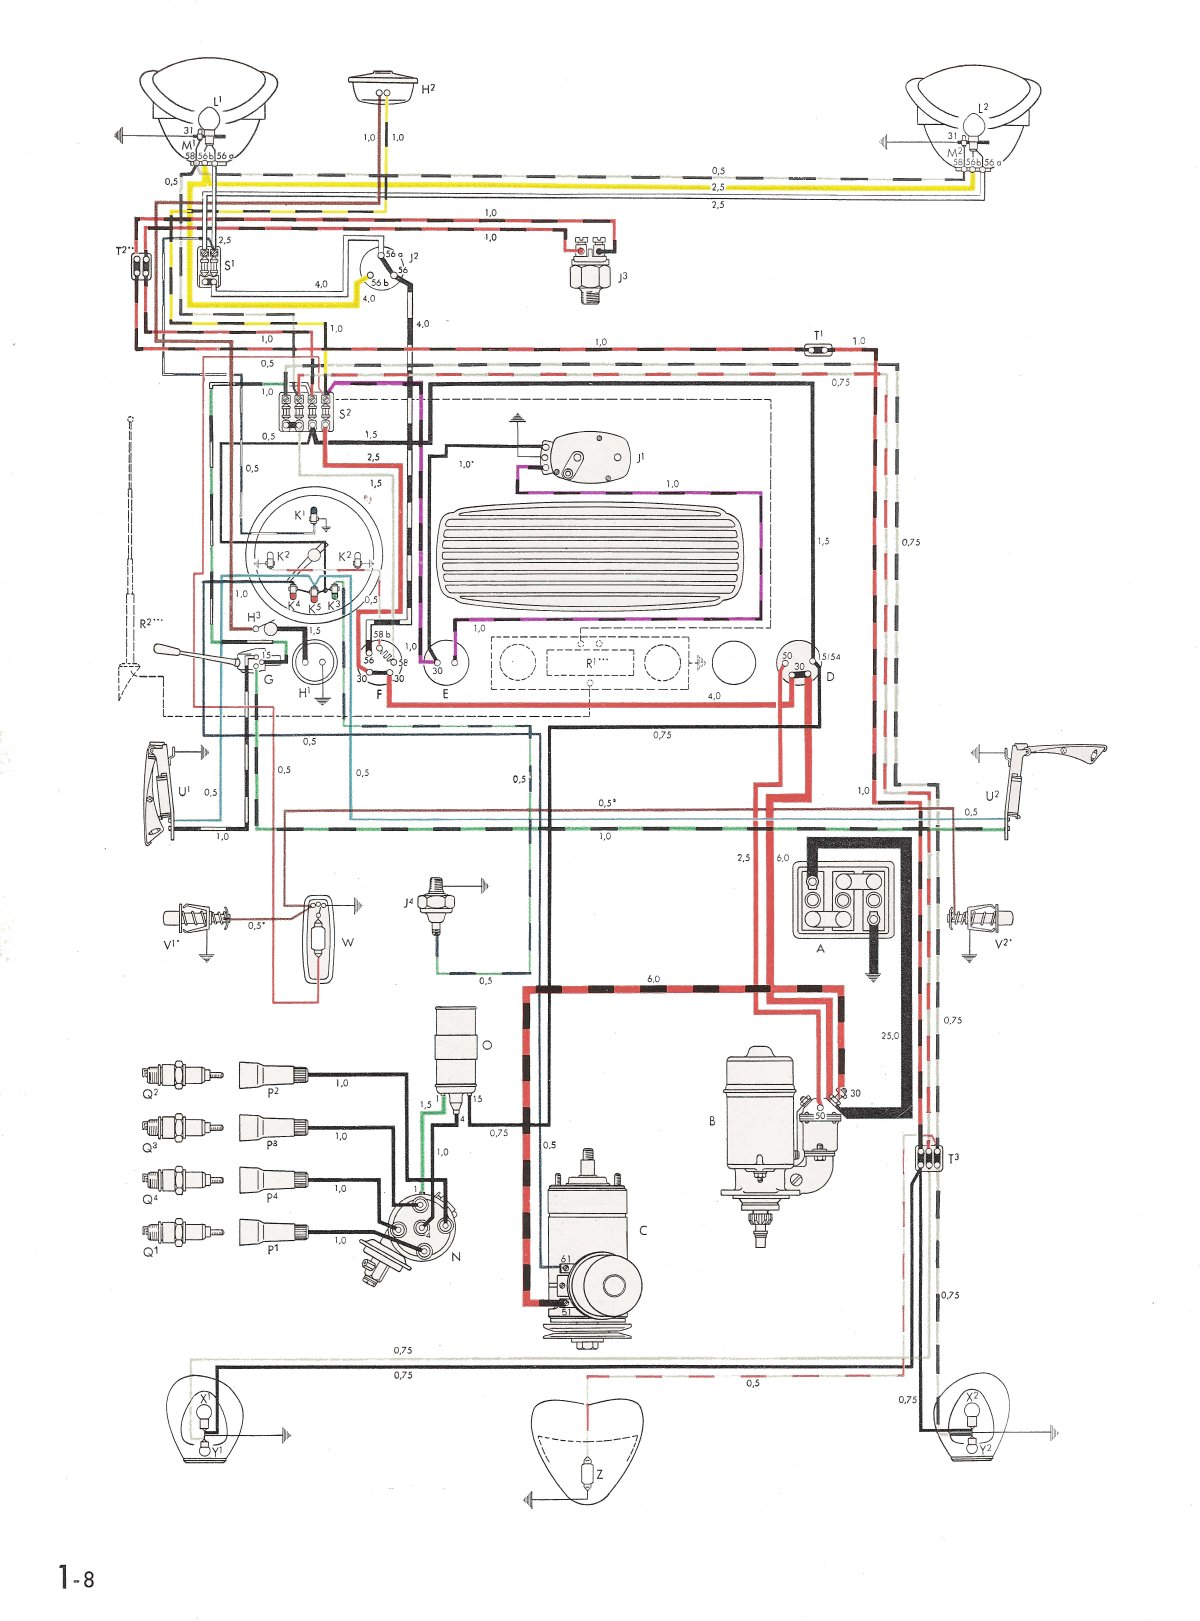 1979 vw beetle wiring diagram